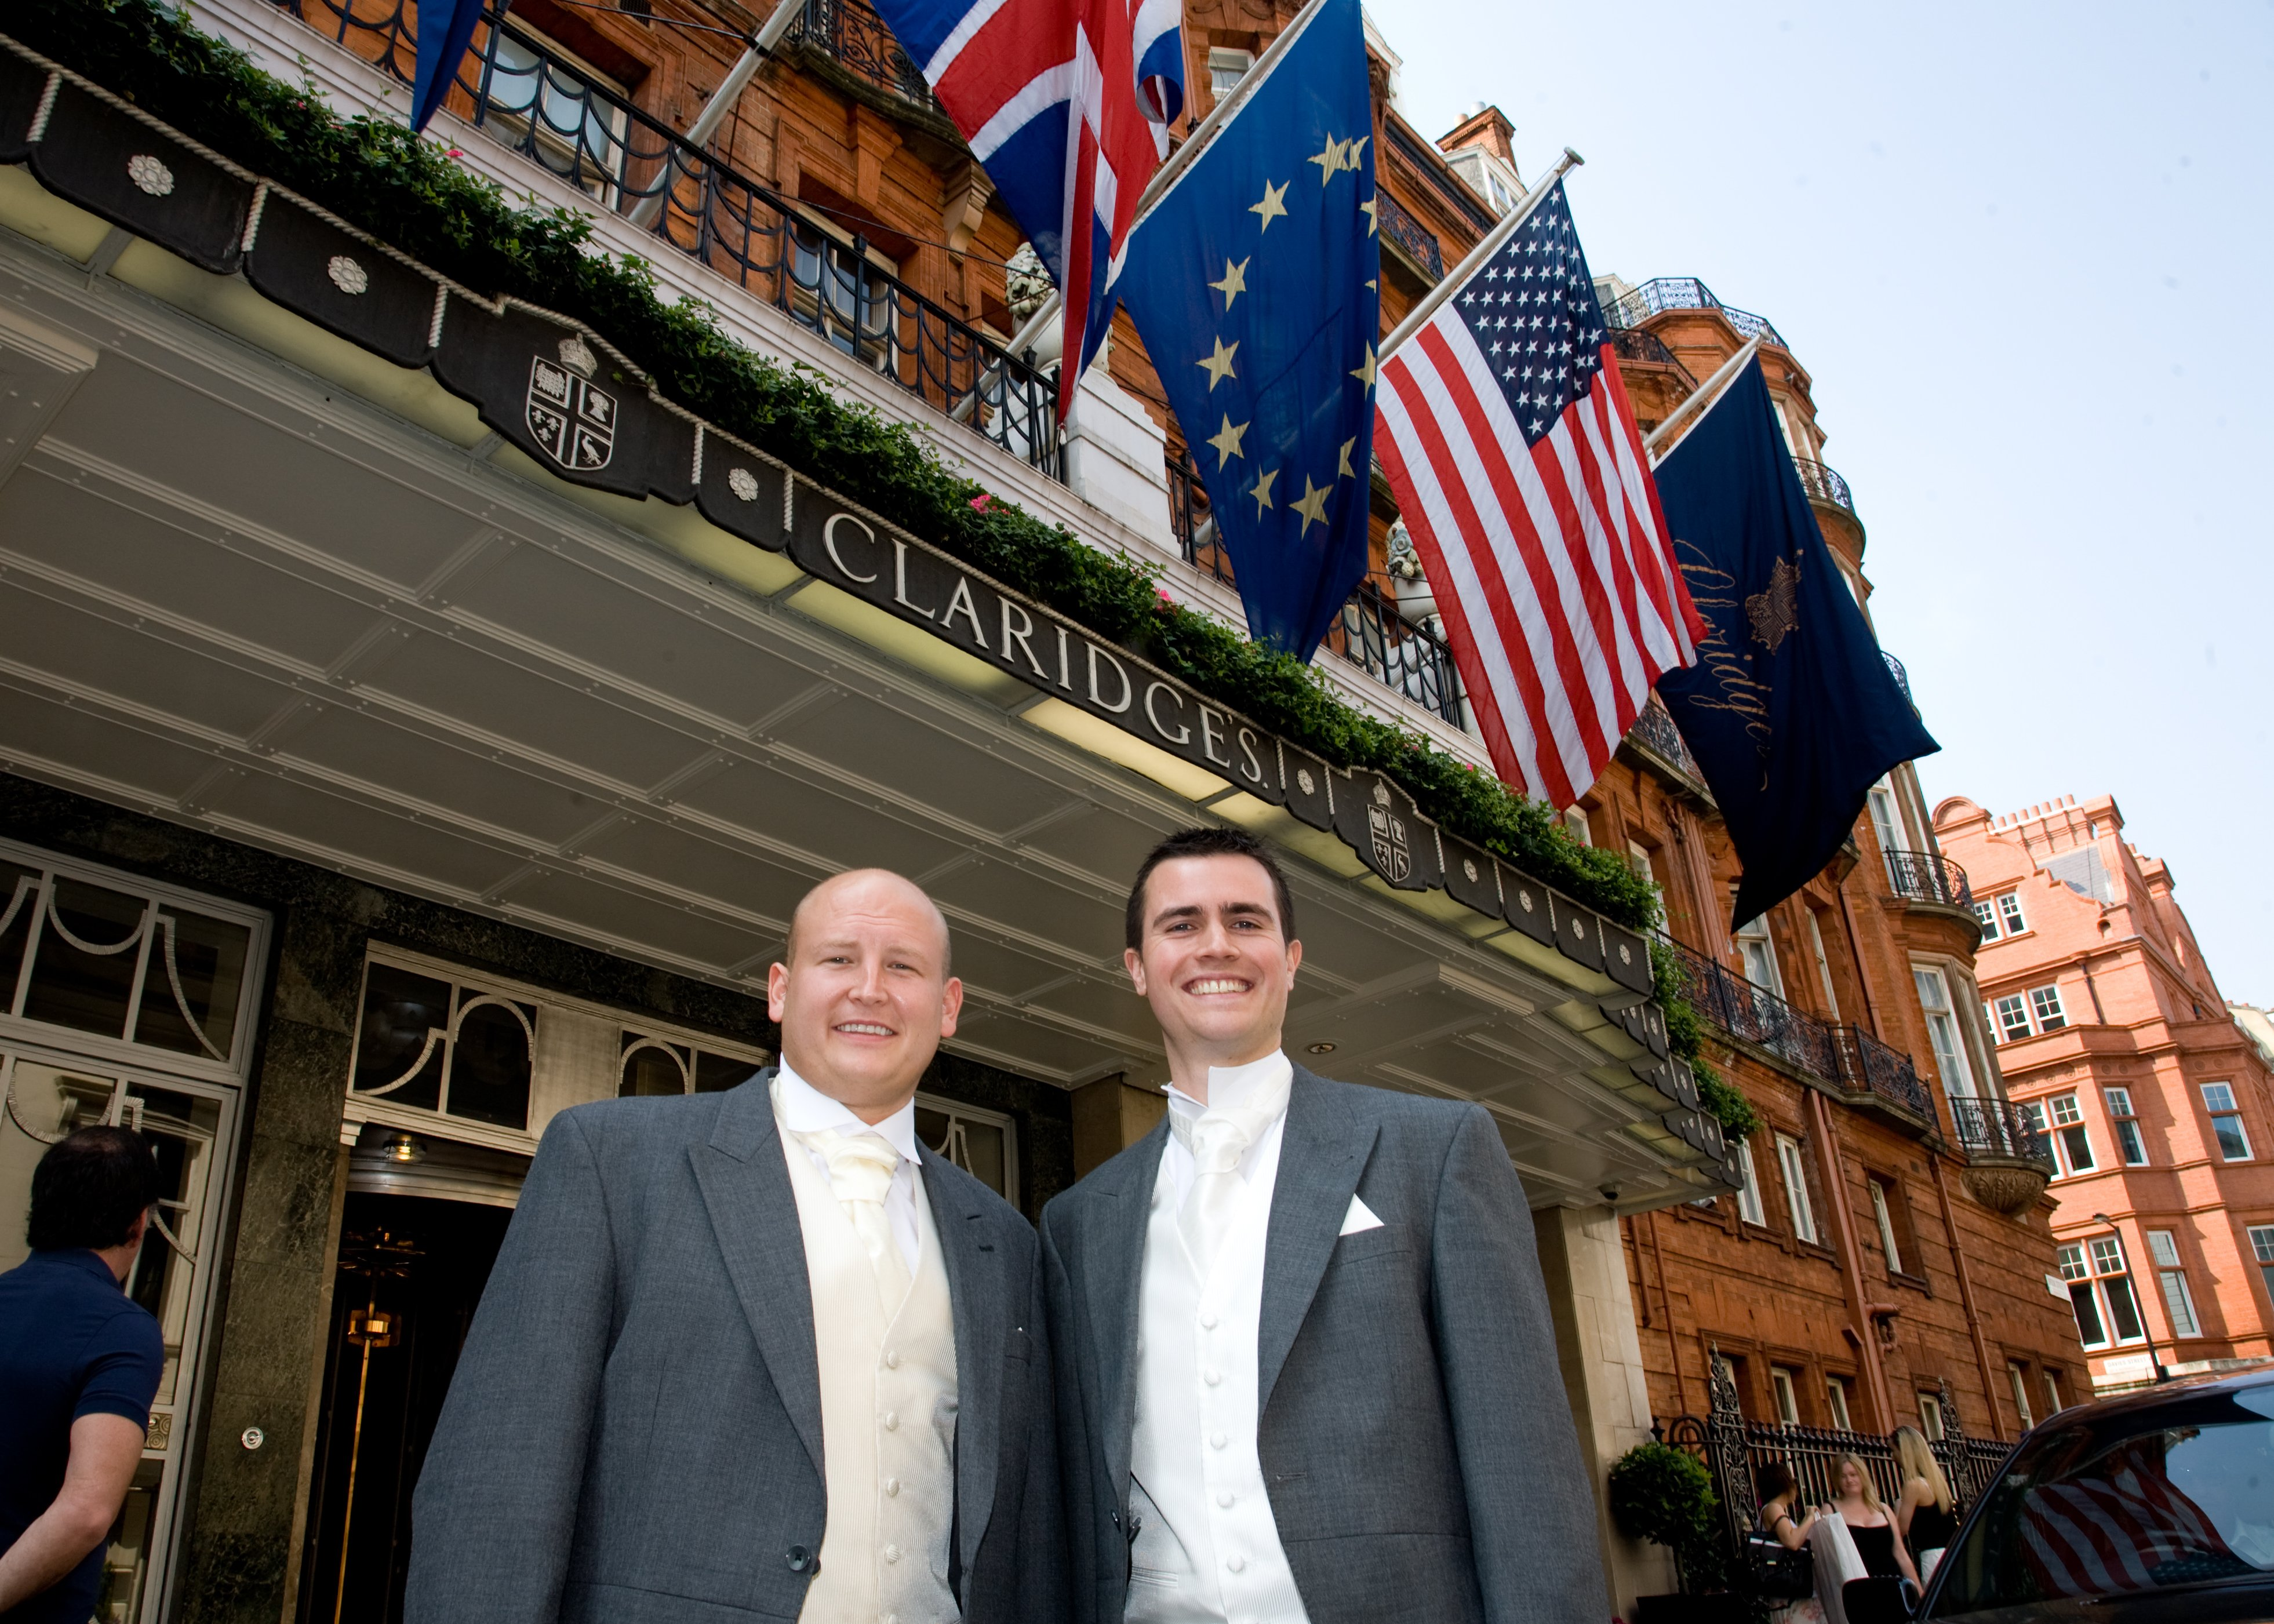 Two men in white tie dress, standing in front of Claridge's